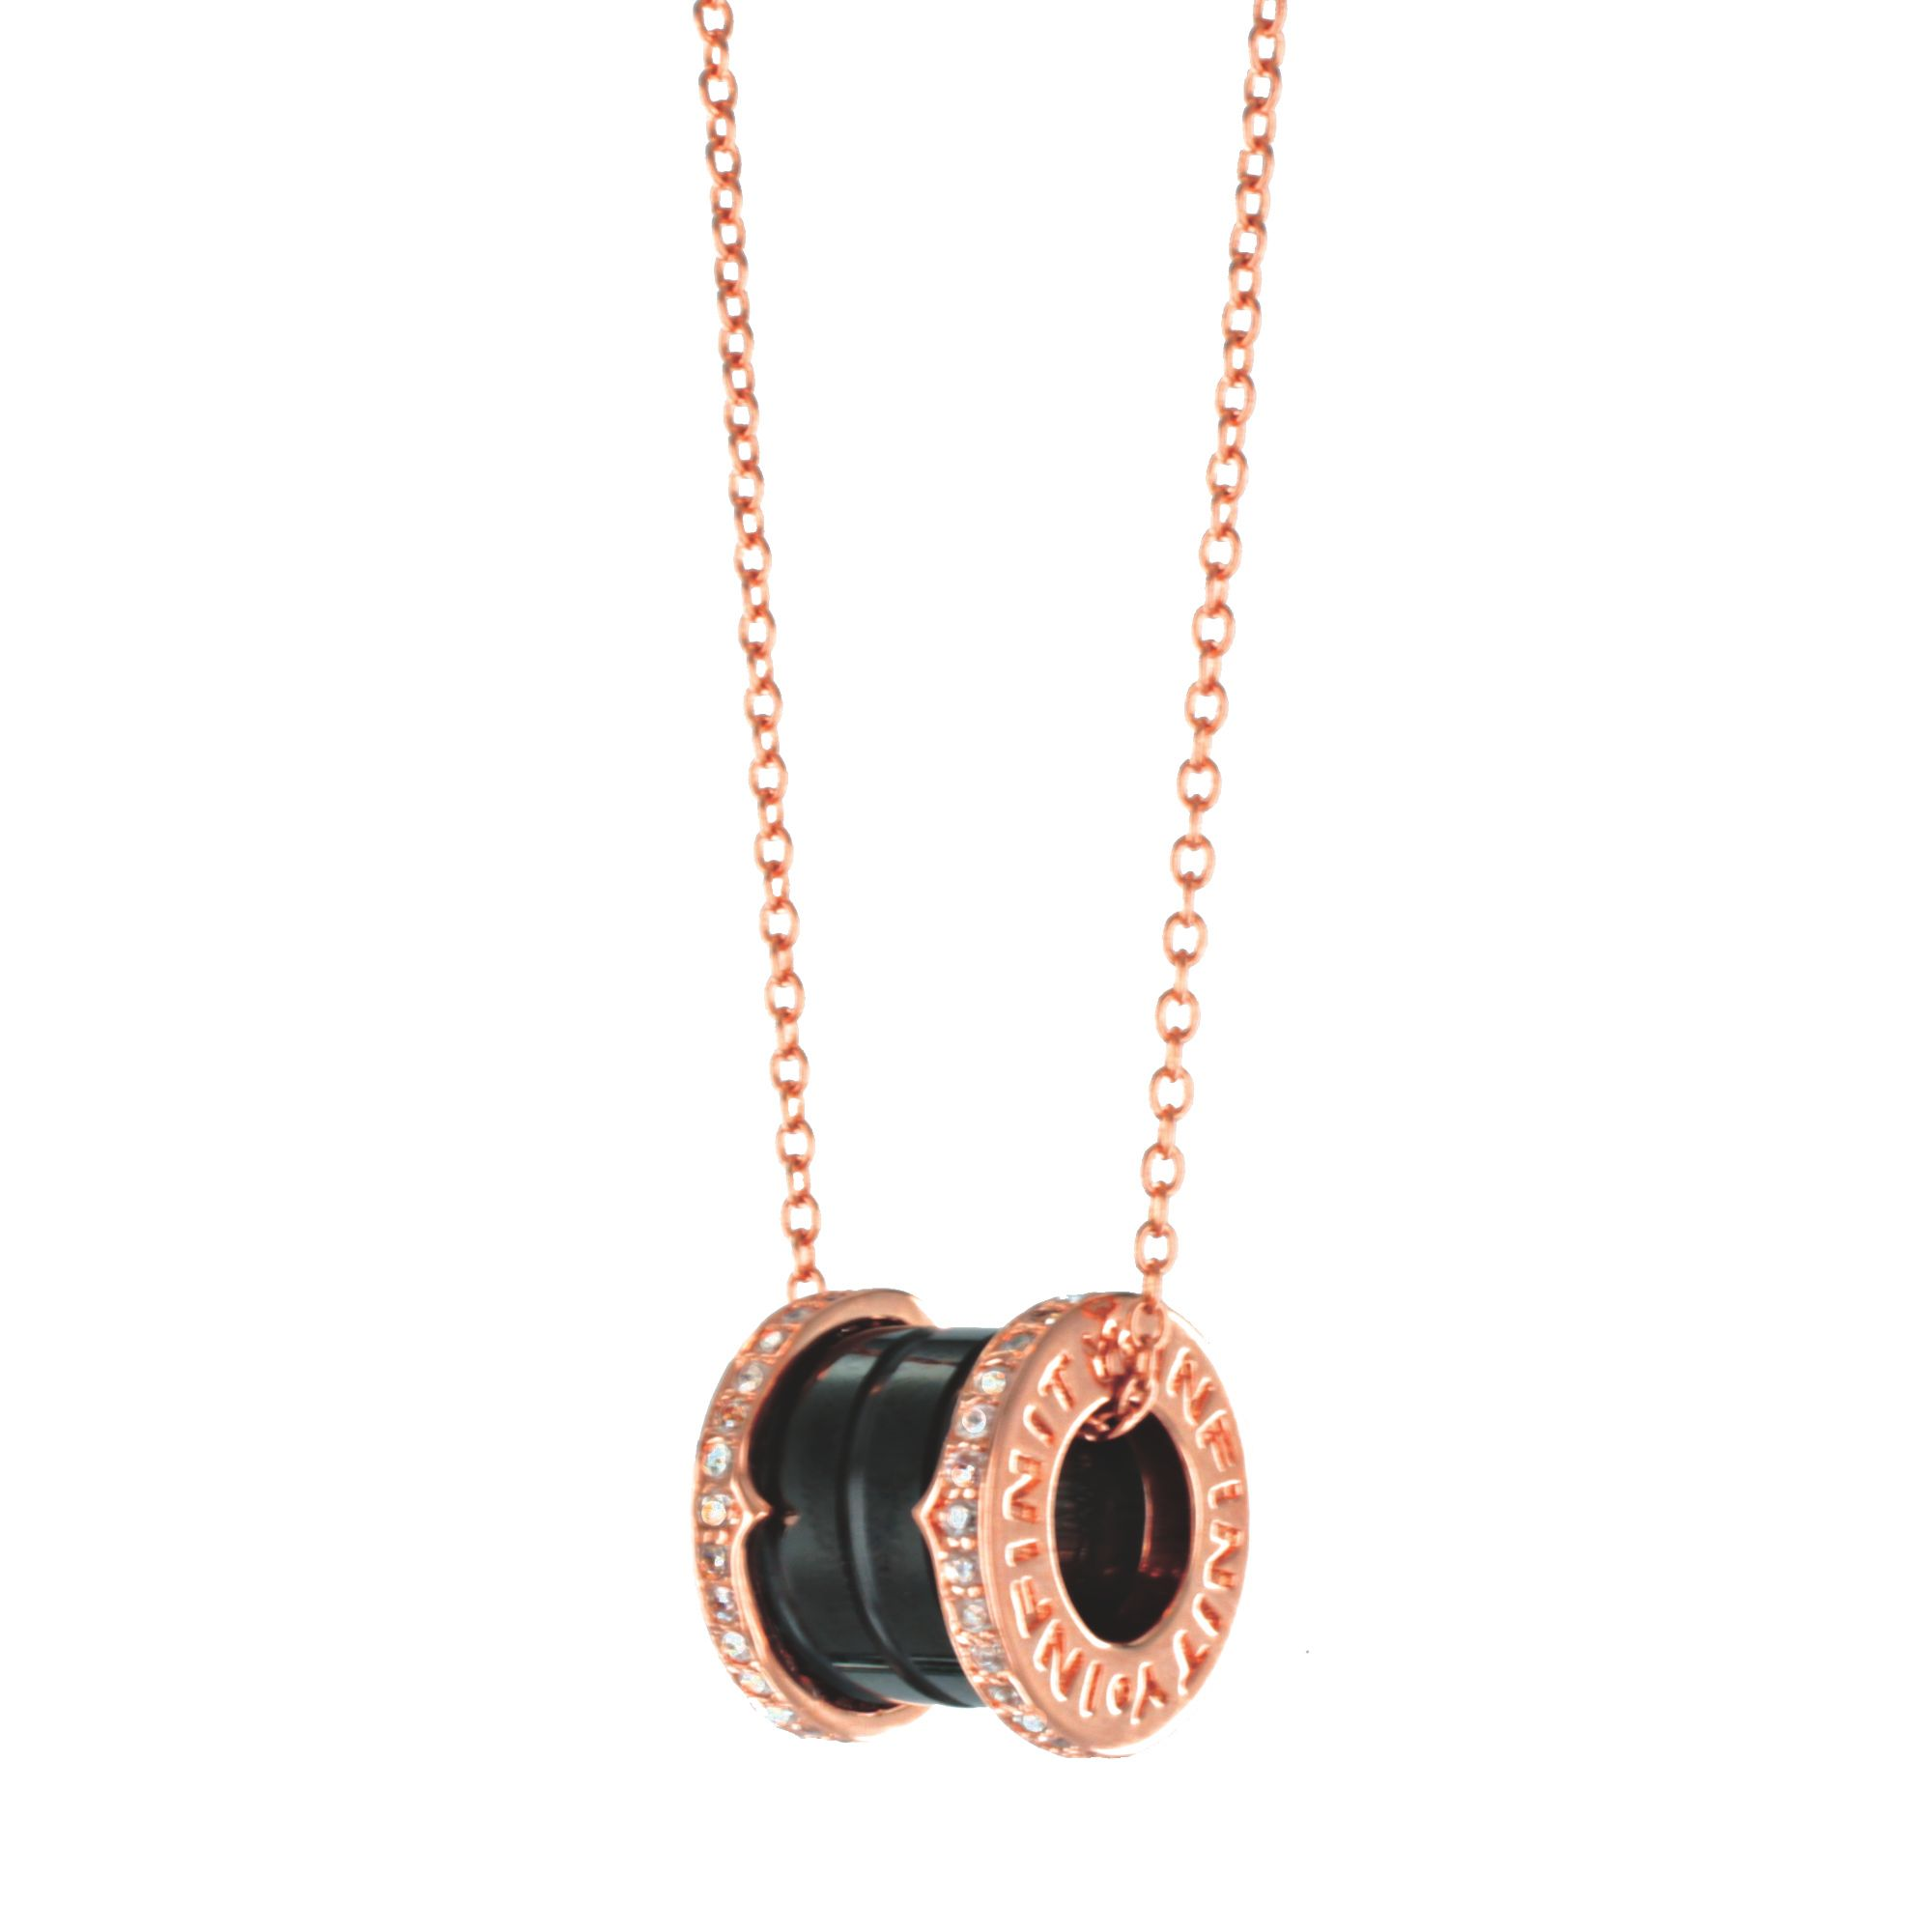 Infinity & Co Infinity & Co Emilie Pendant Black Rose, N/A